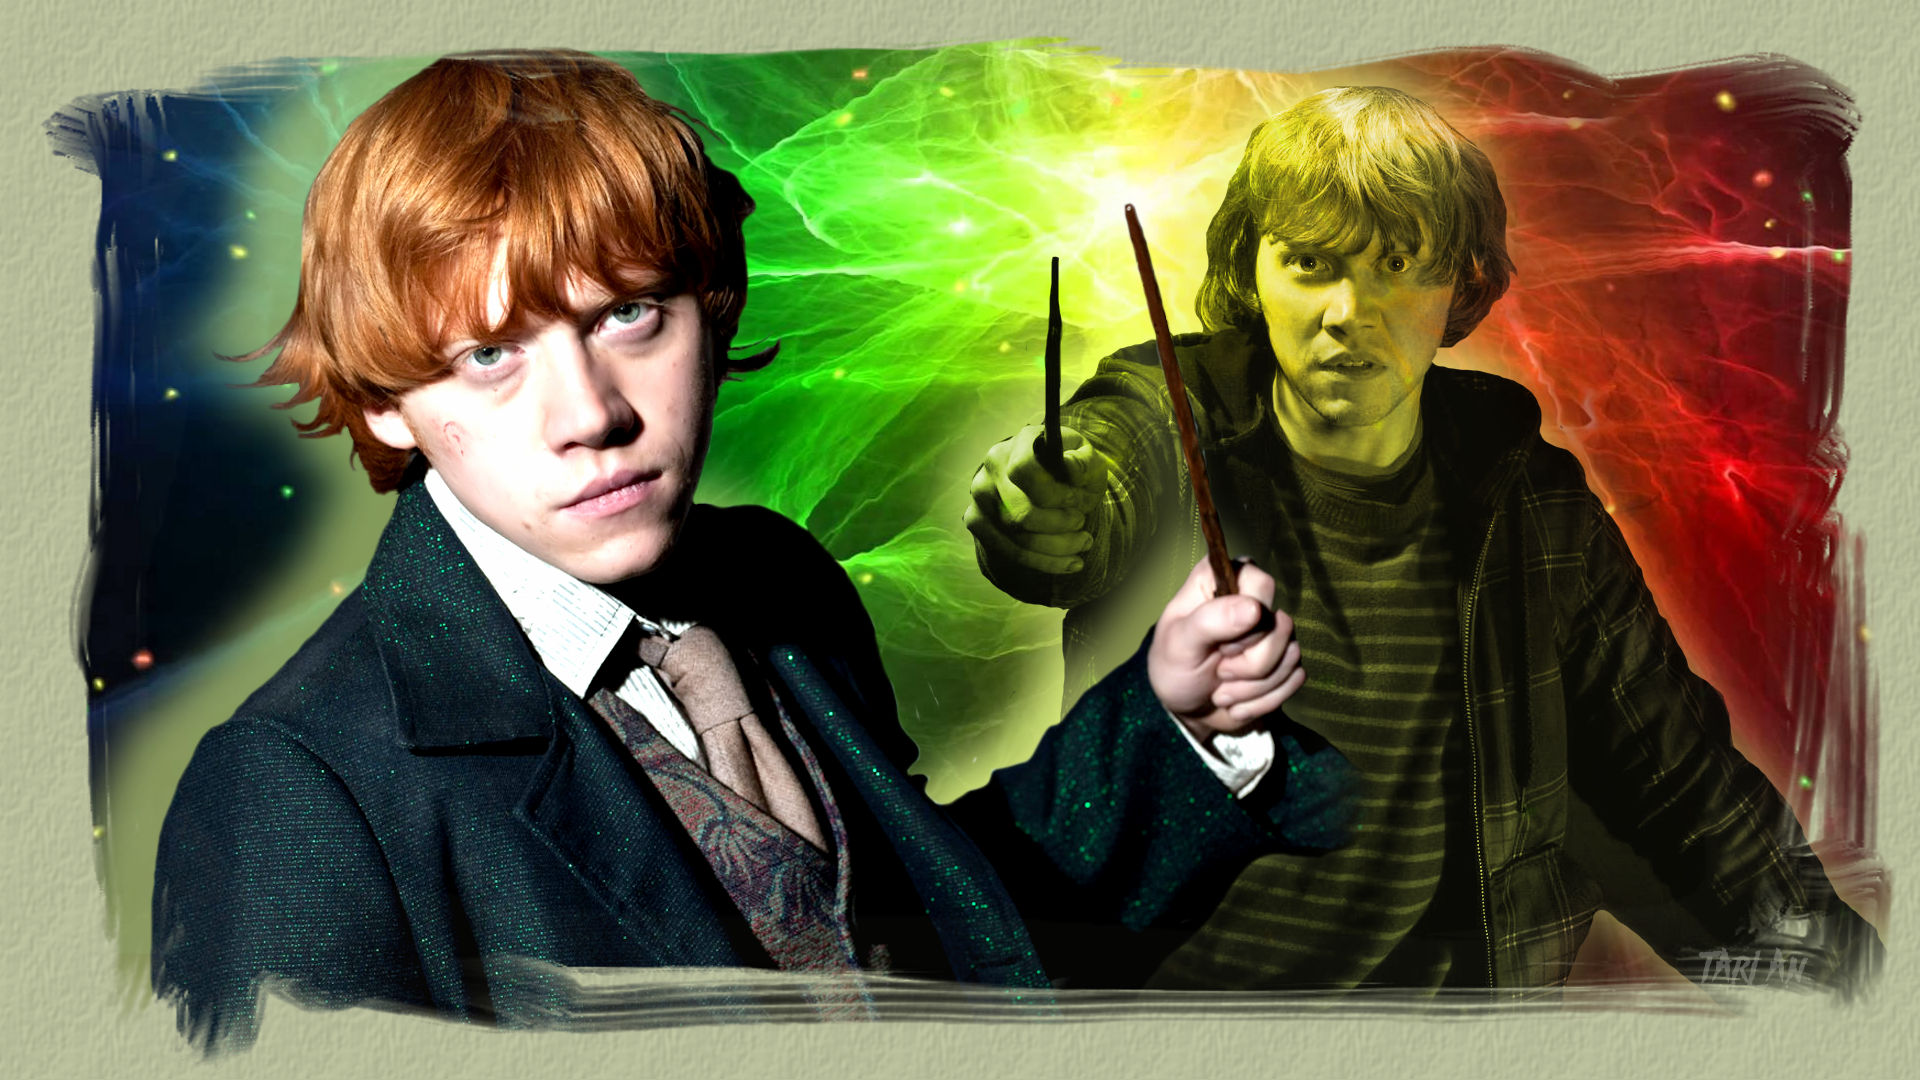 Harry Potter - Ron Weasley by Tarlan